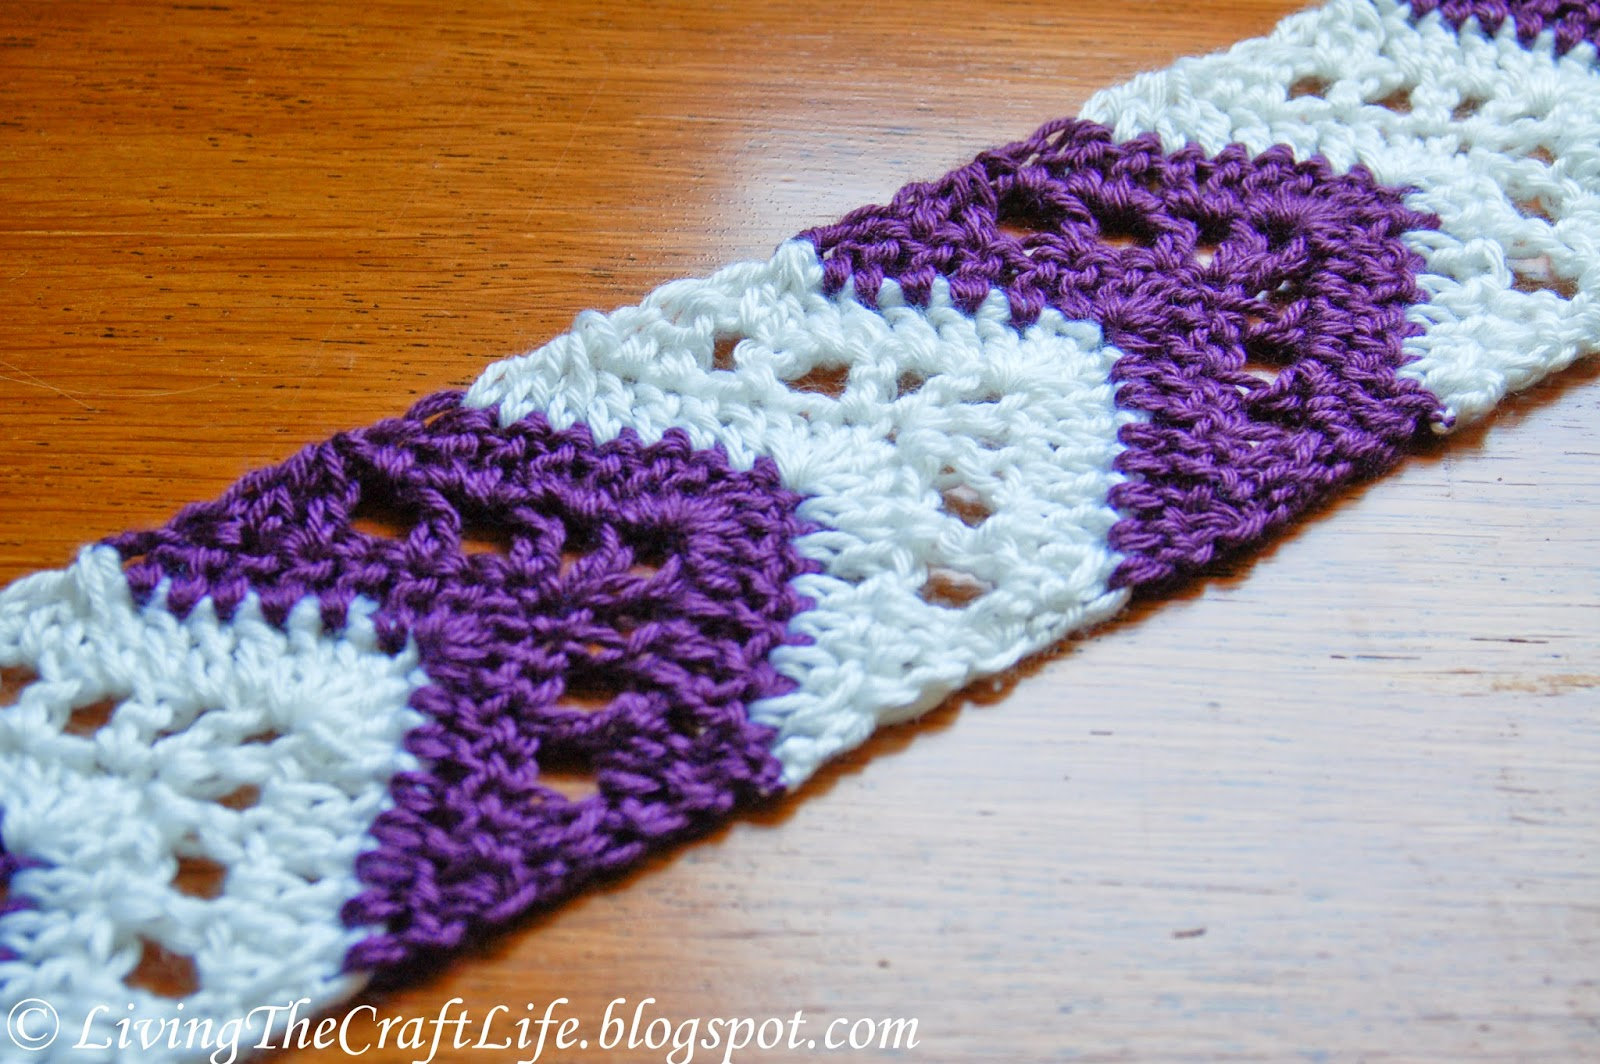 Crochet Stitches Chevron : Living the Craft Life: Chevron Arrow Skinny Scarf - Free Pattern